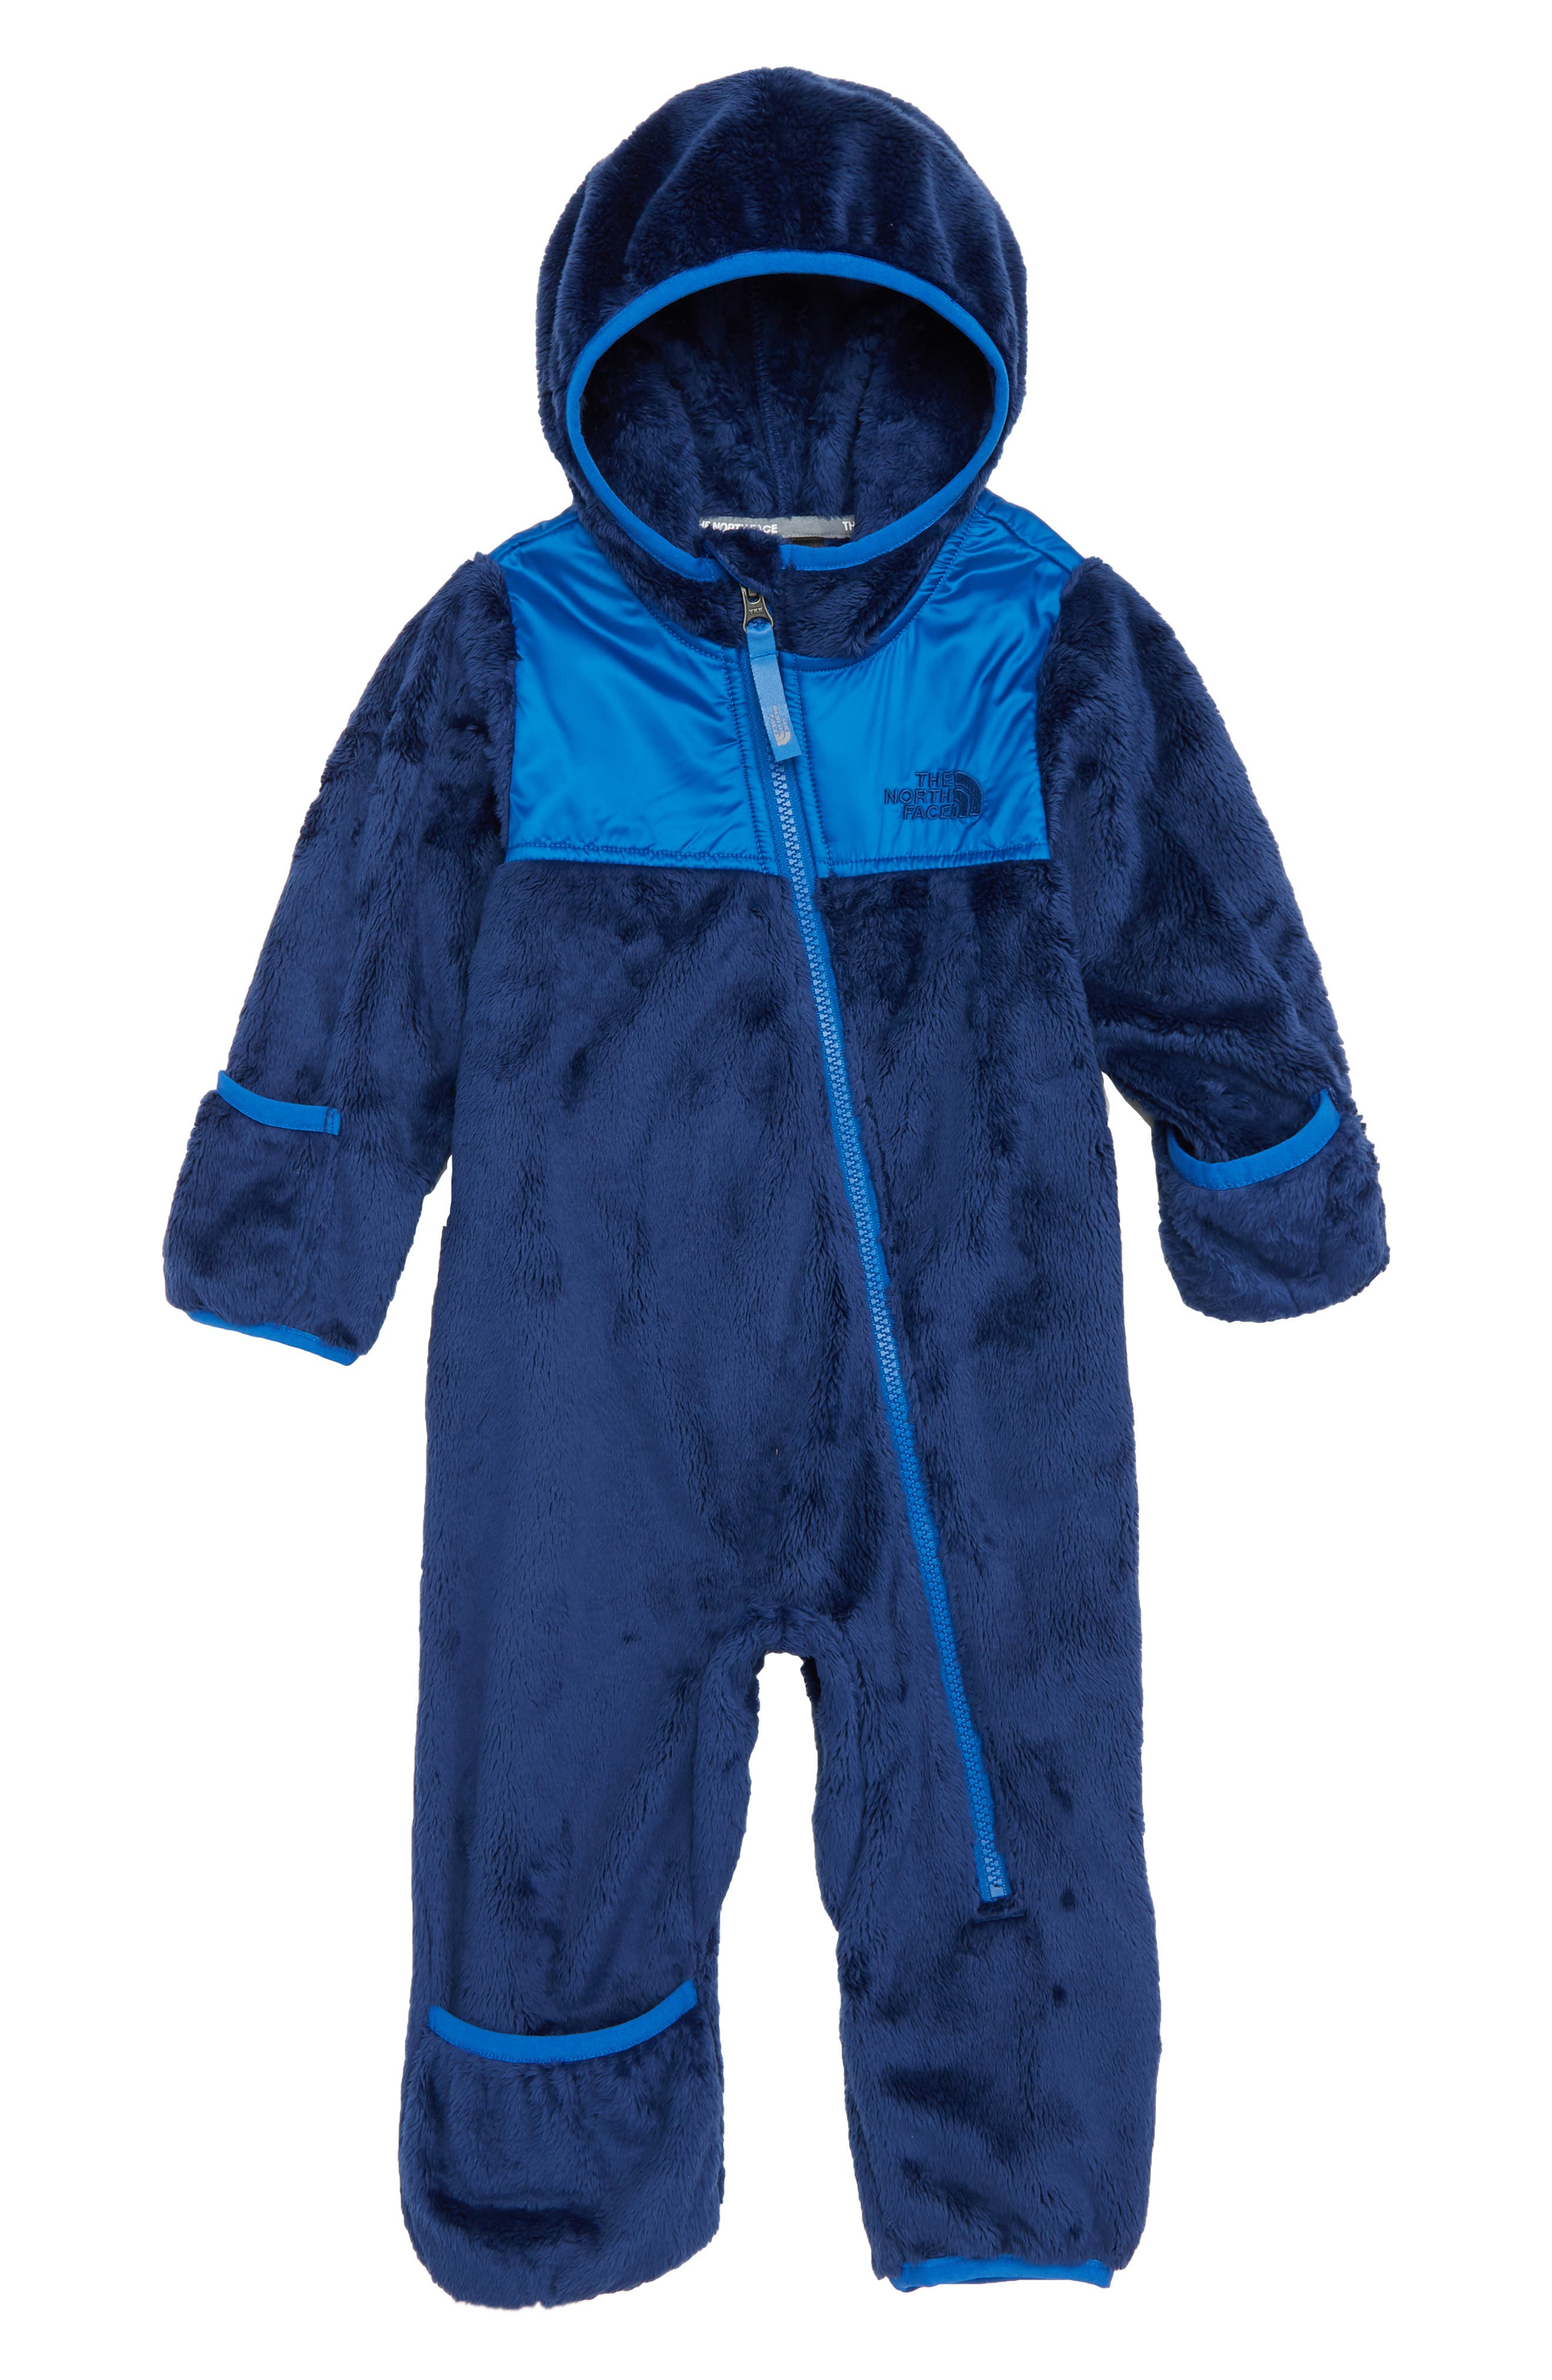 Infant Boys The North Face Oso Hooded Fleece Romper Size 612M  Blue